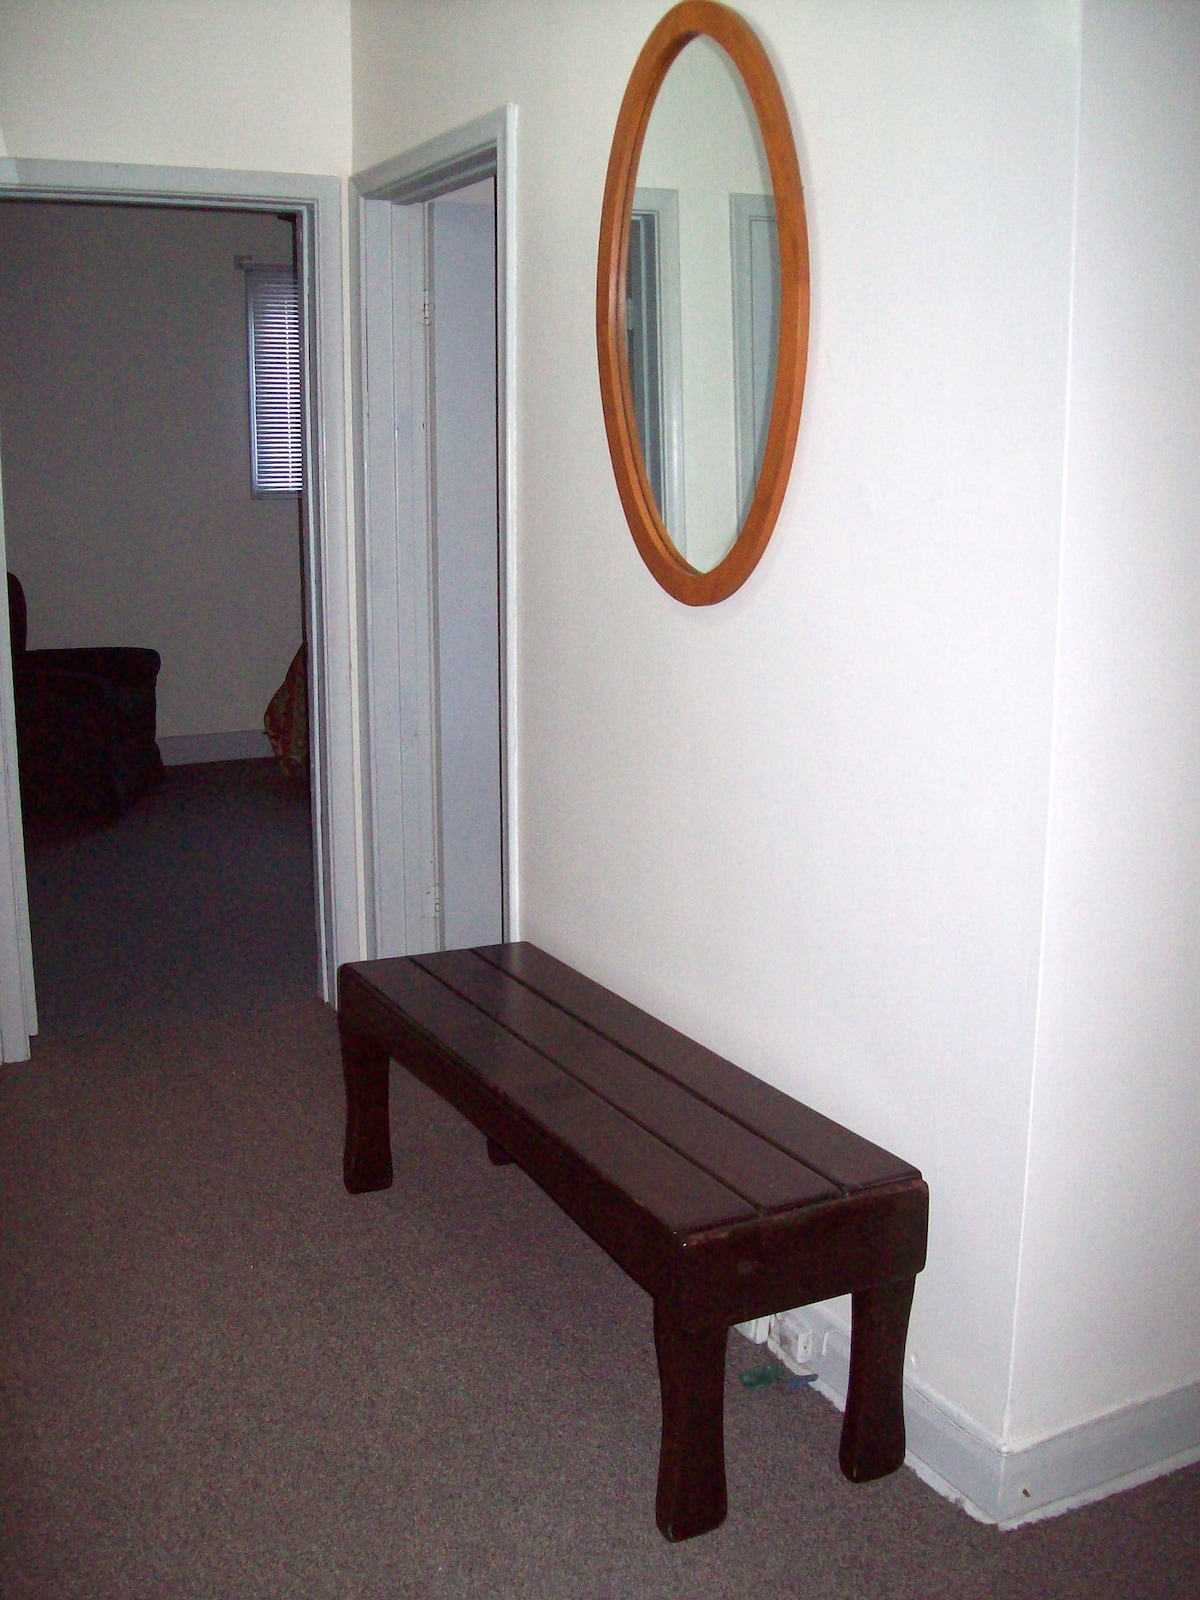 LARGE FOYER   ENTRANCE   AREA   via  FIRE   RATED   DOOR   (PER   City   Code)  -